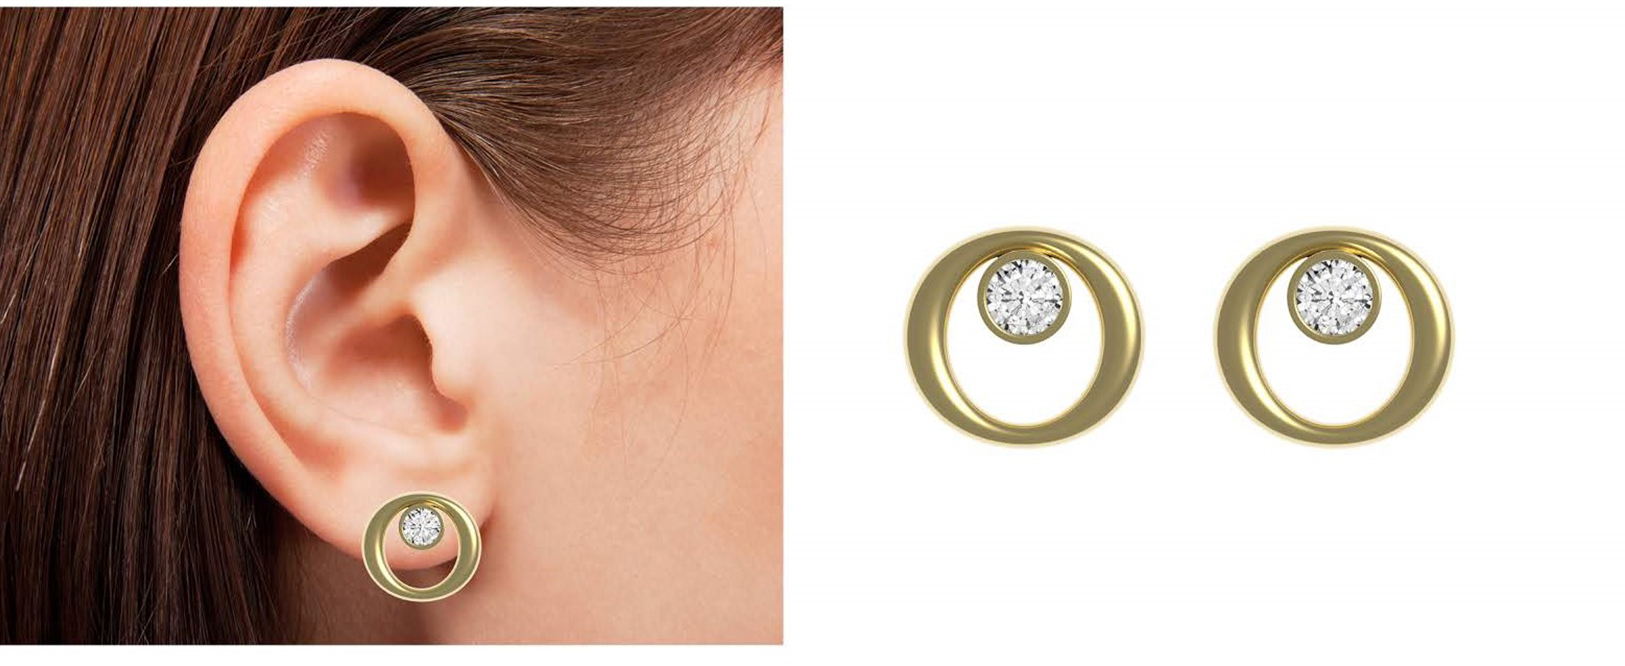 Rounded Earrings worn and zoomed in